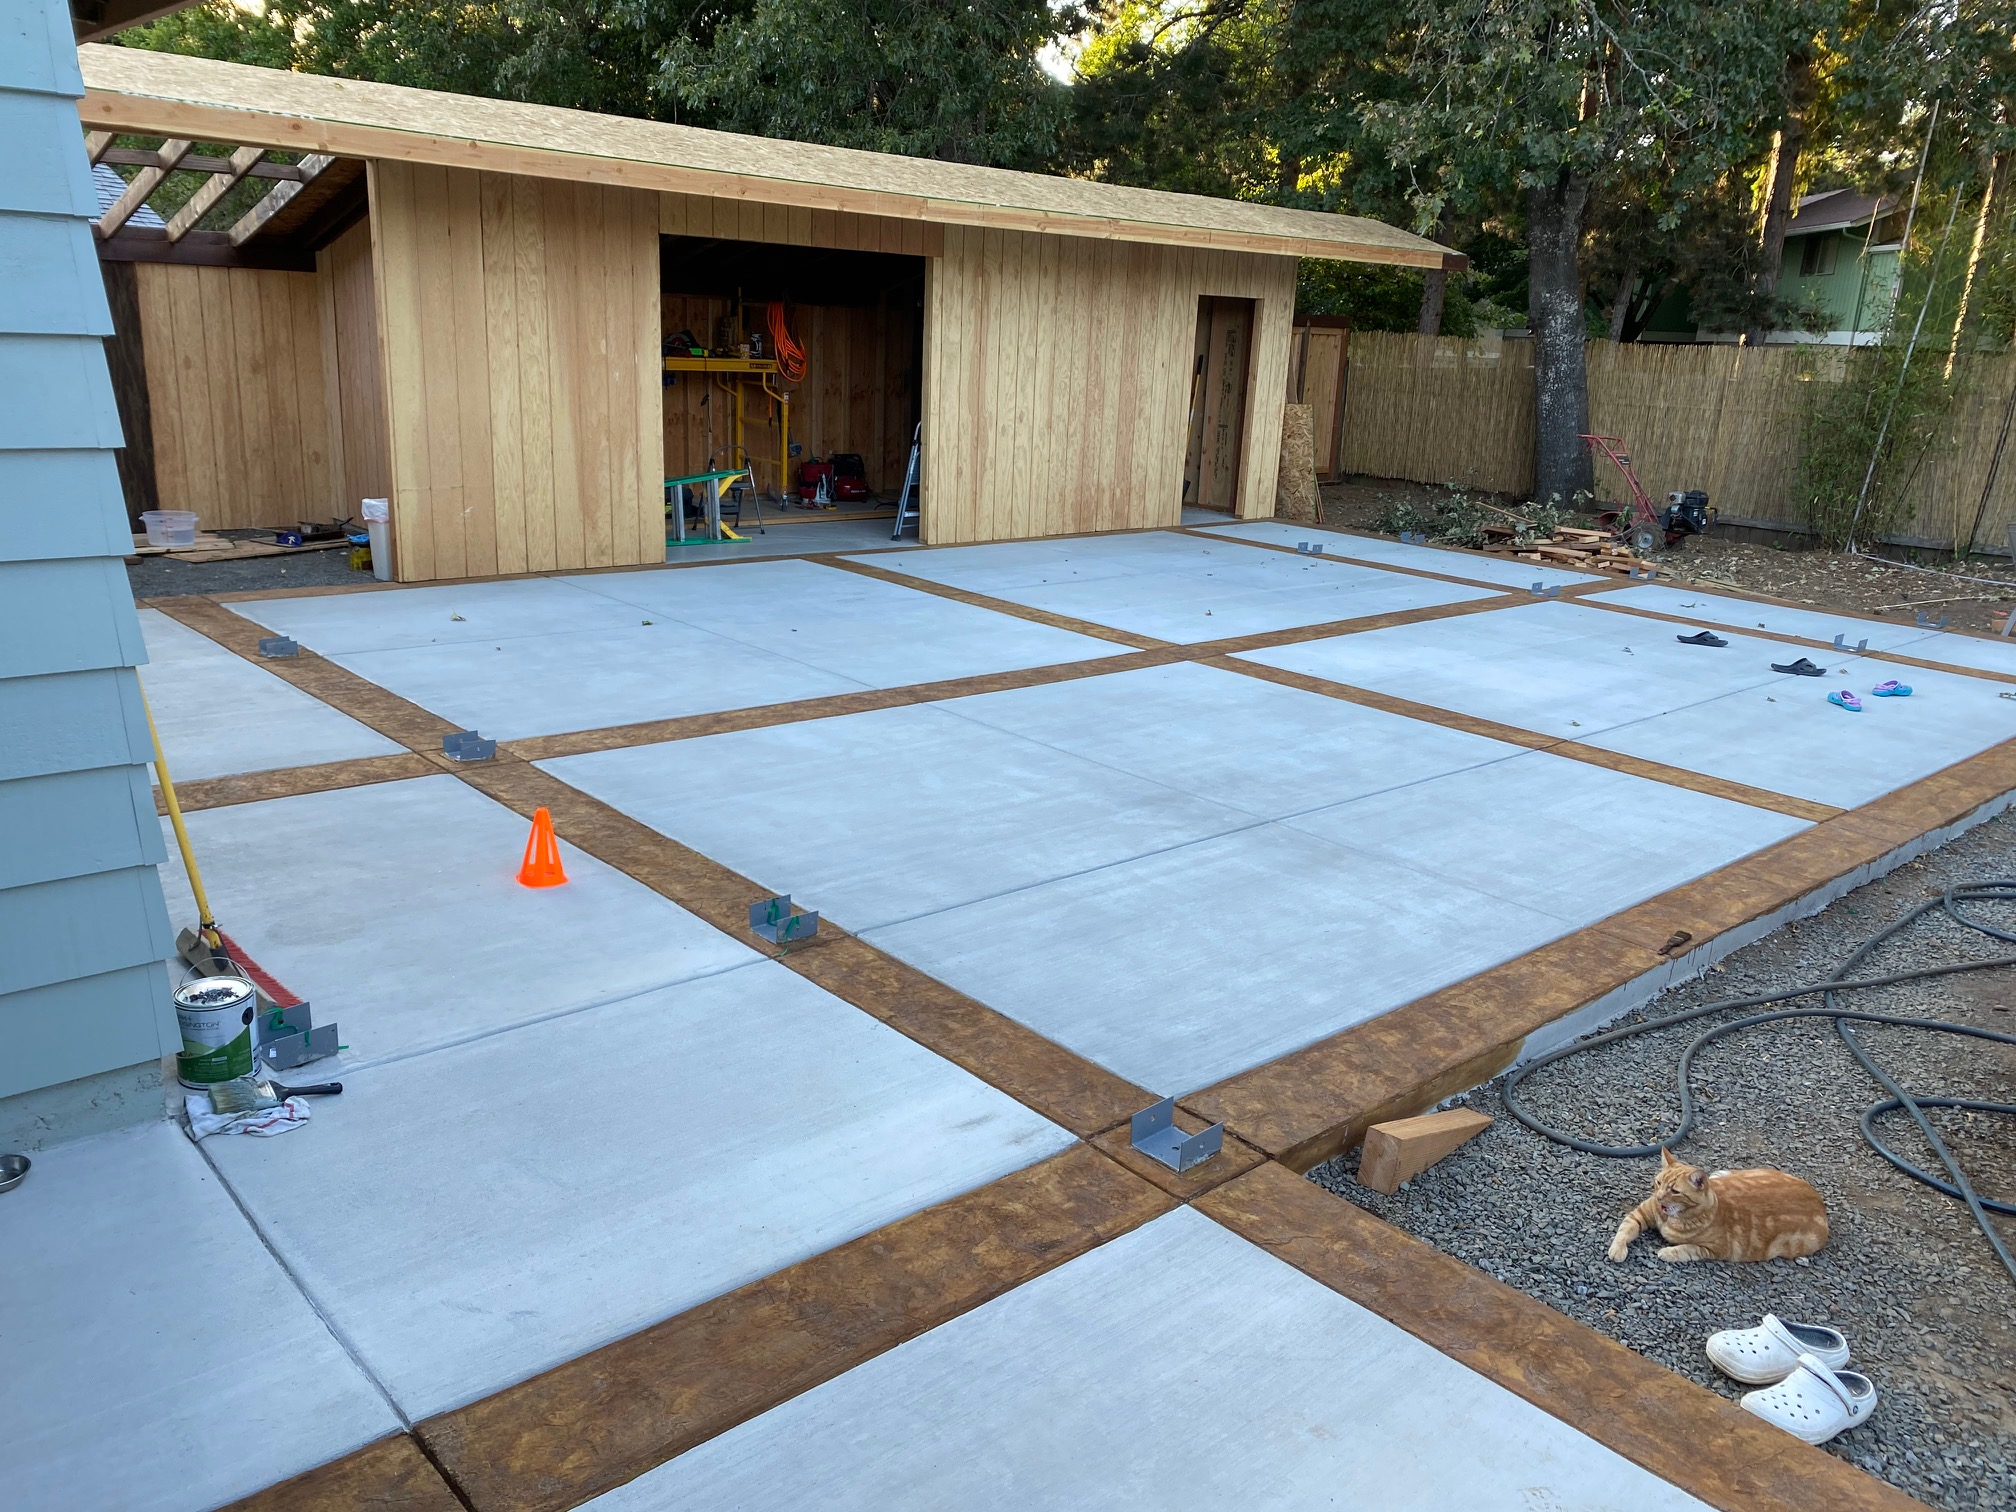 staining and texturing the borders of the concrete patio